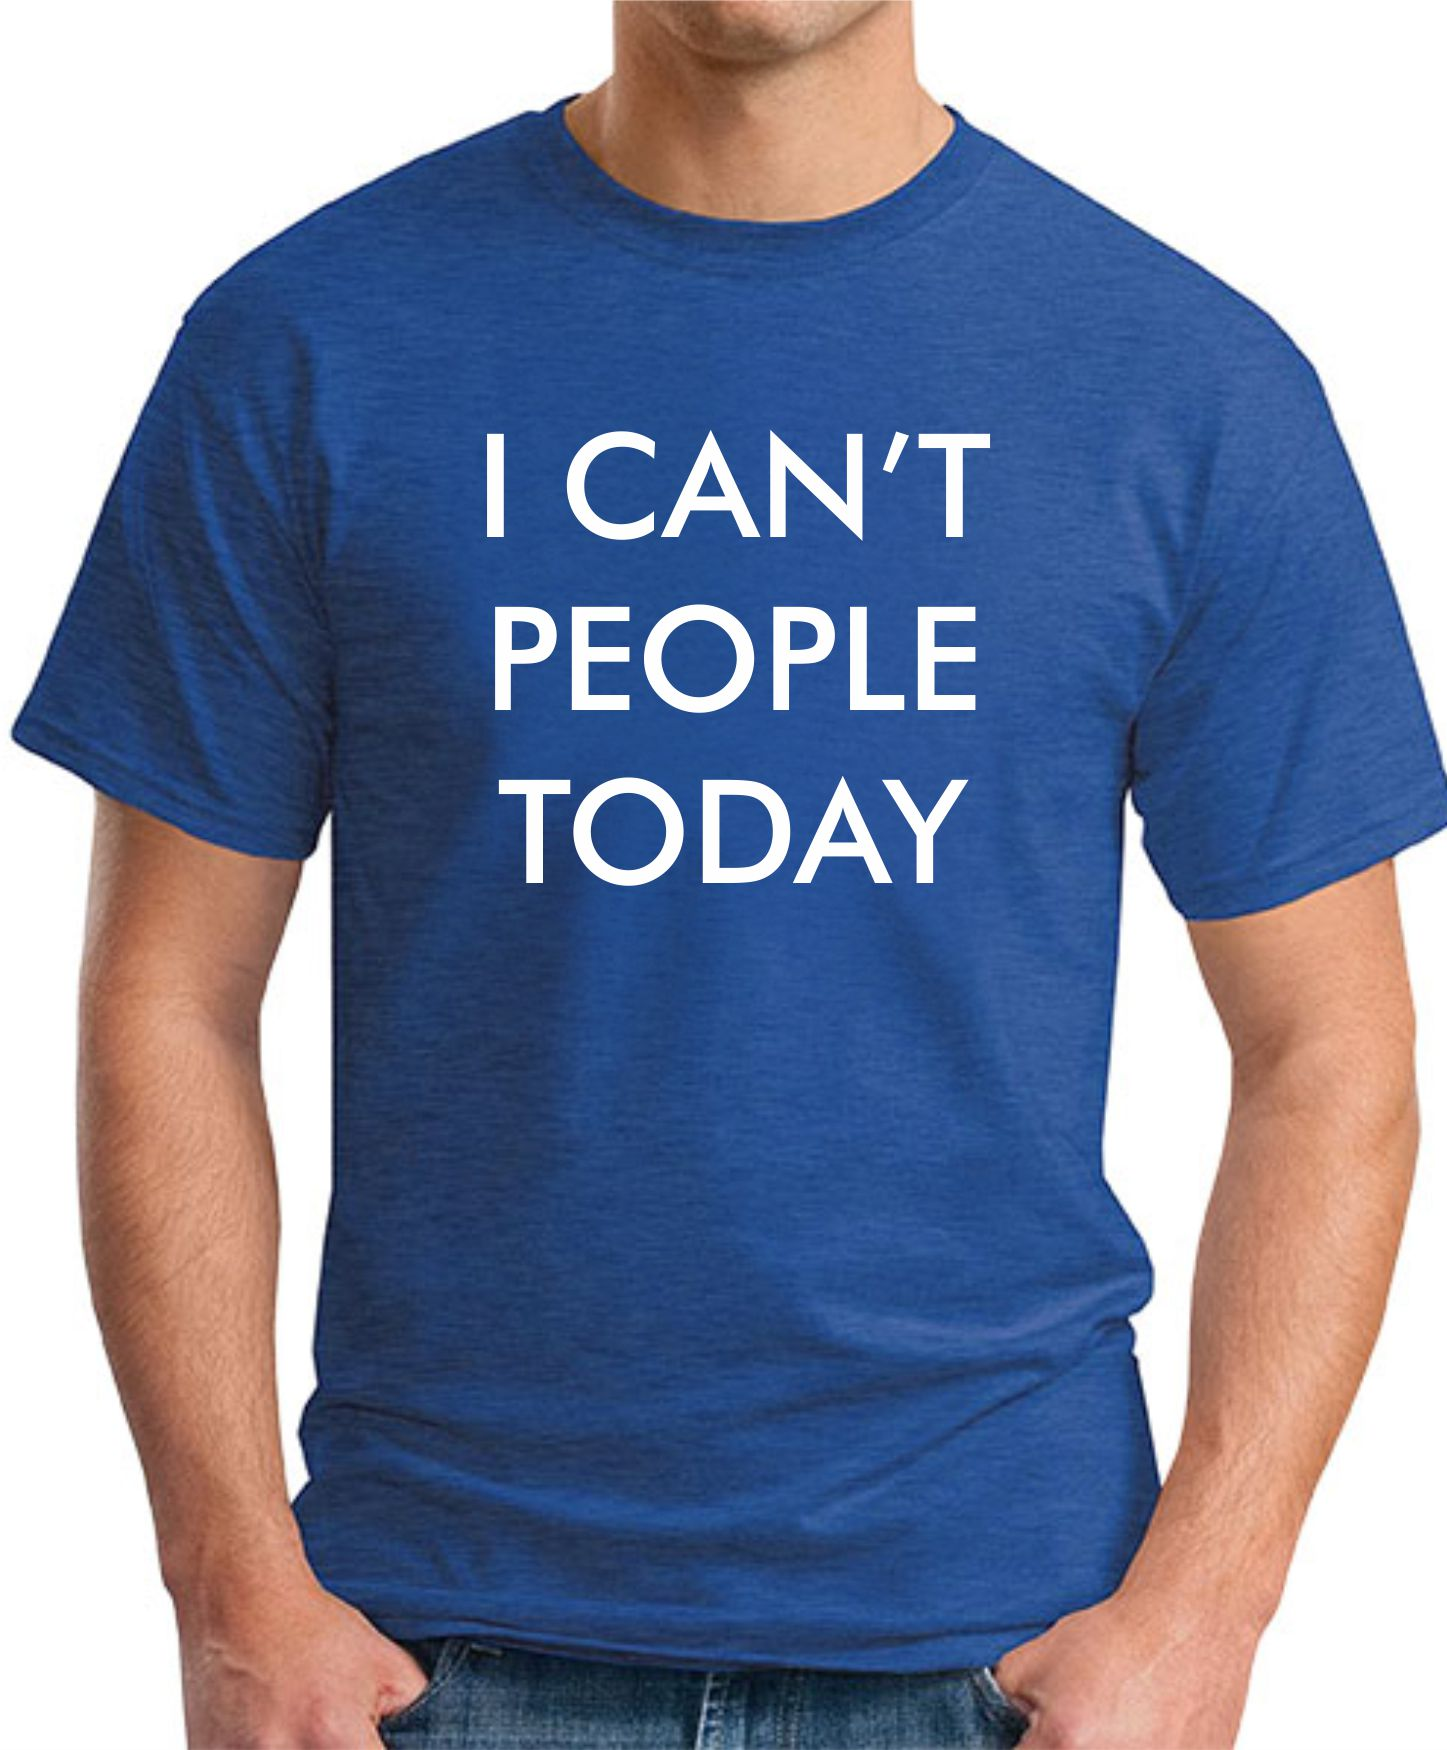 I CAN'T PEOPLE TODAY ROYAL BLUE